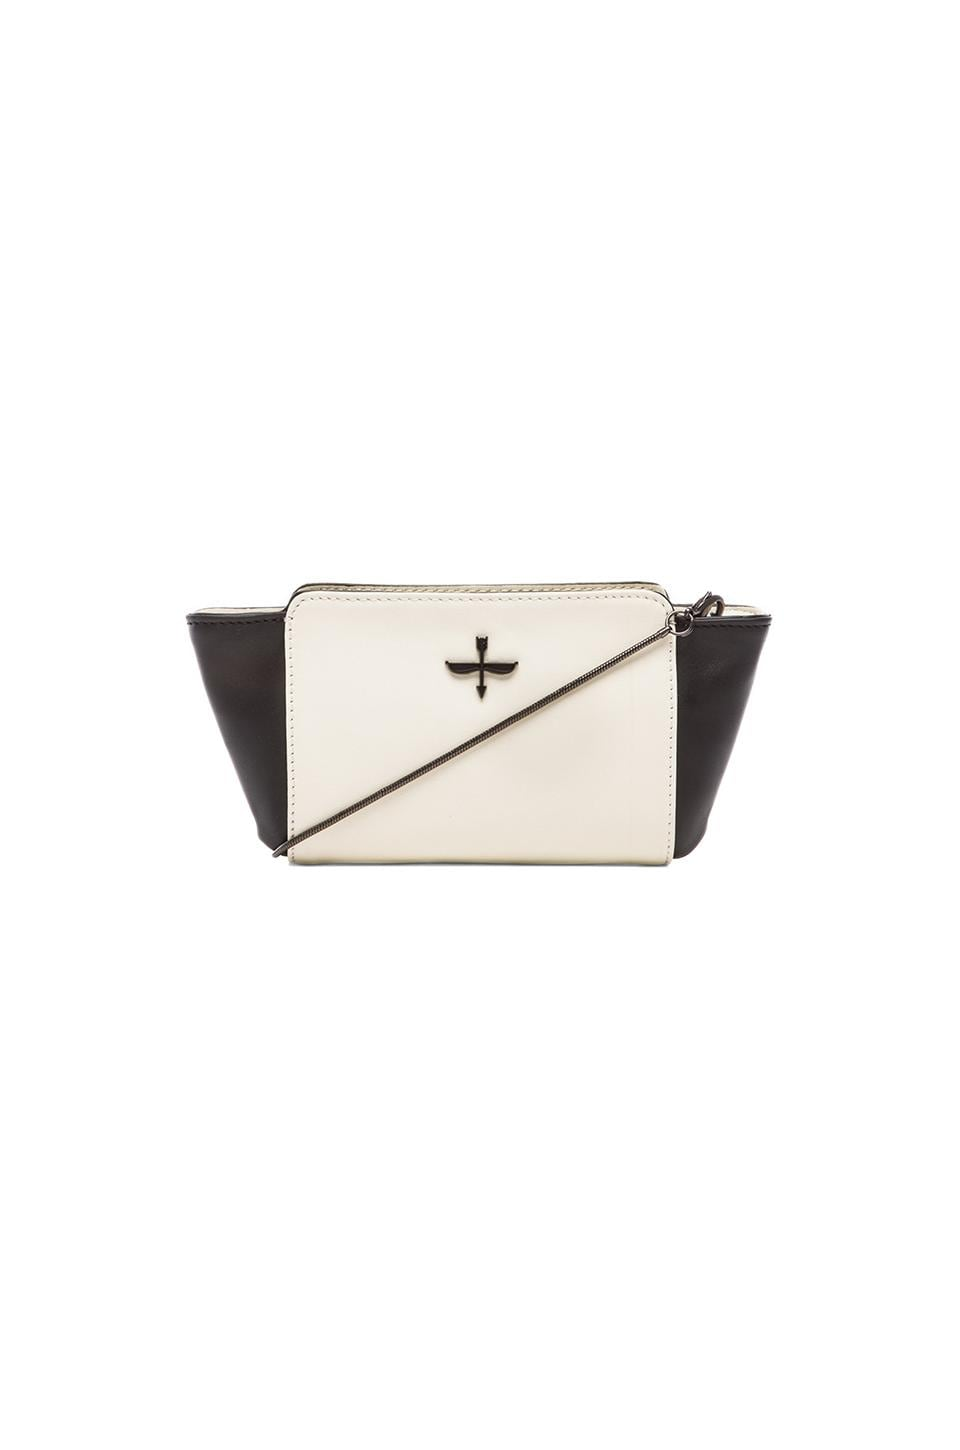 Pour La Victoire Mini Crossbody in Black & White